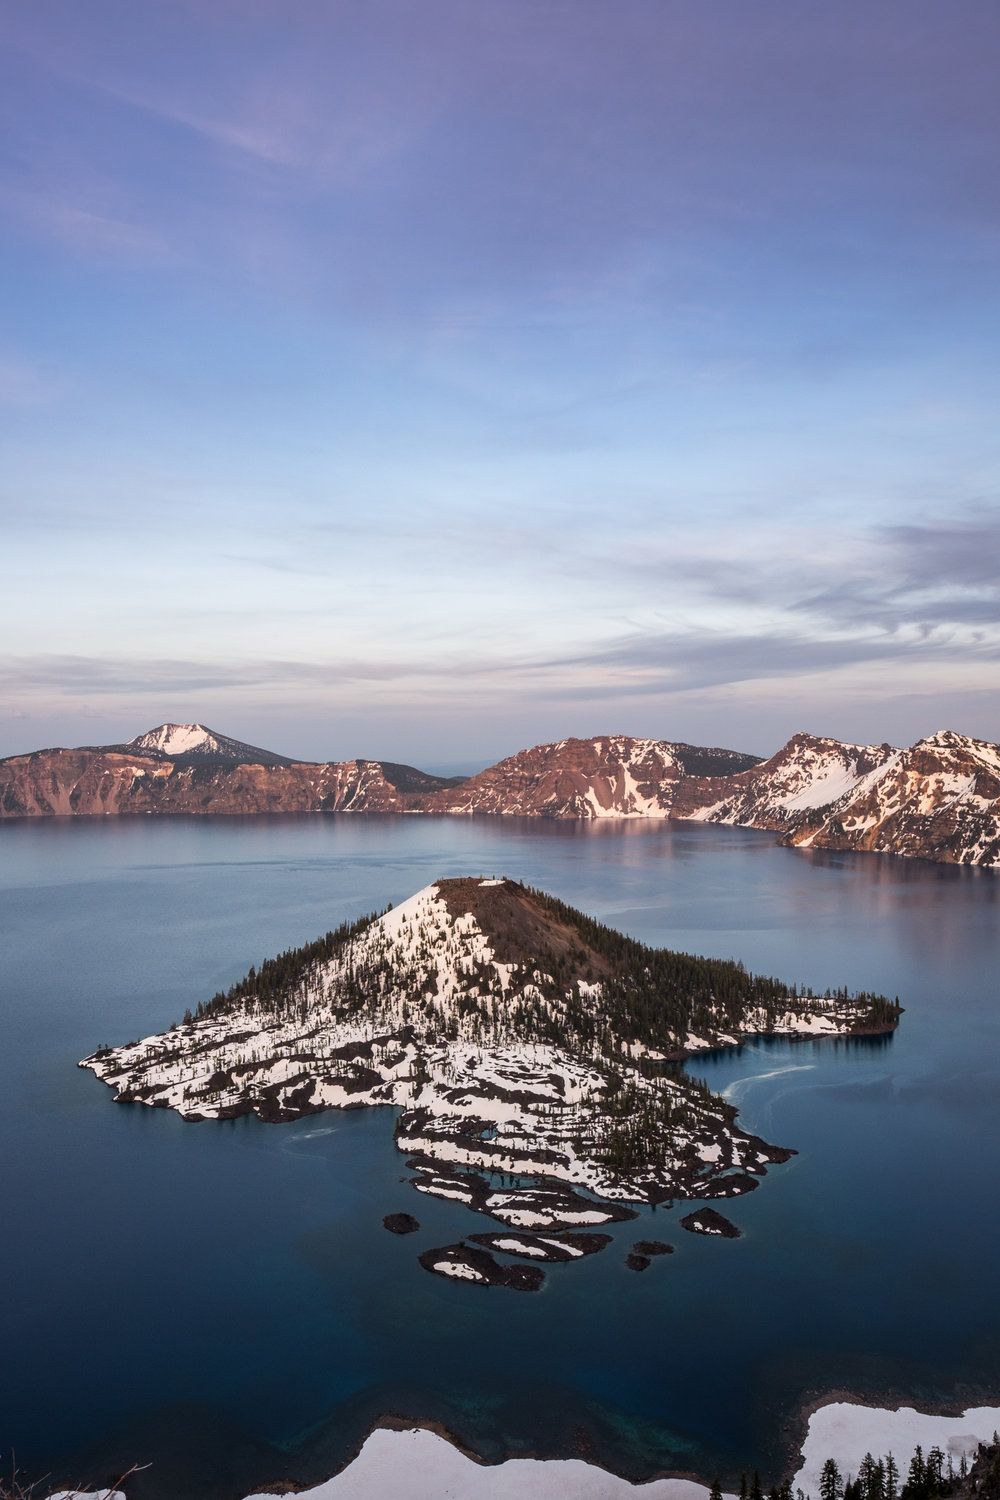 Sunset is a magical time at Crater Lake.